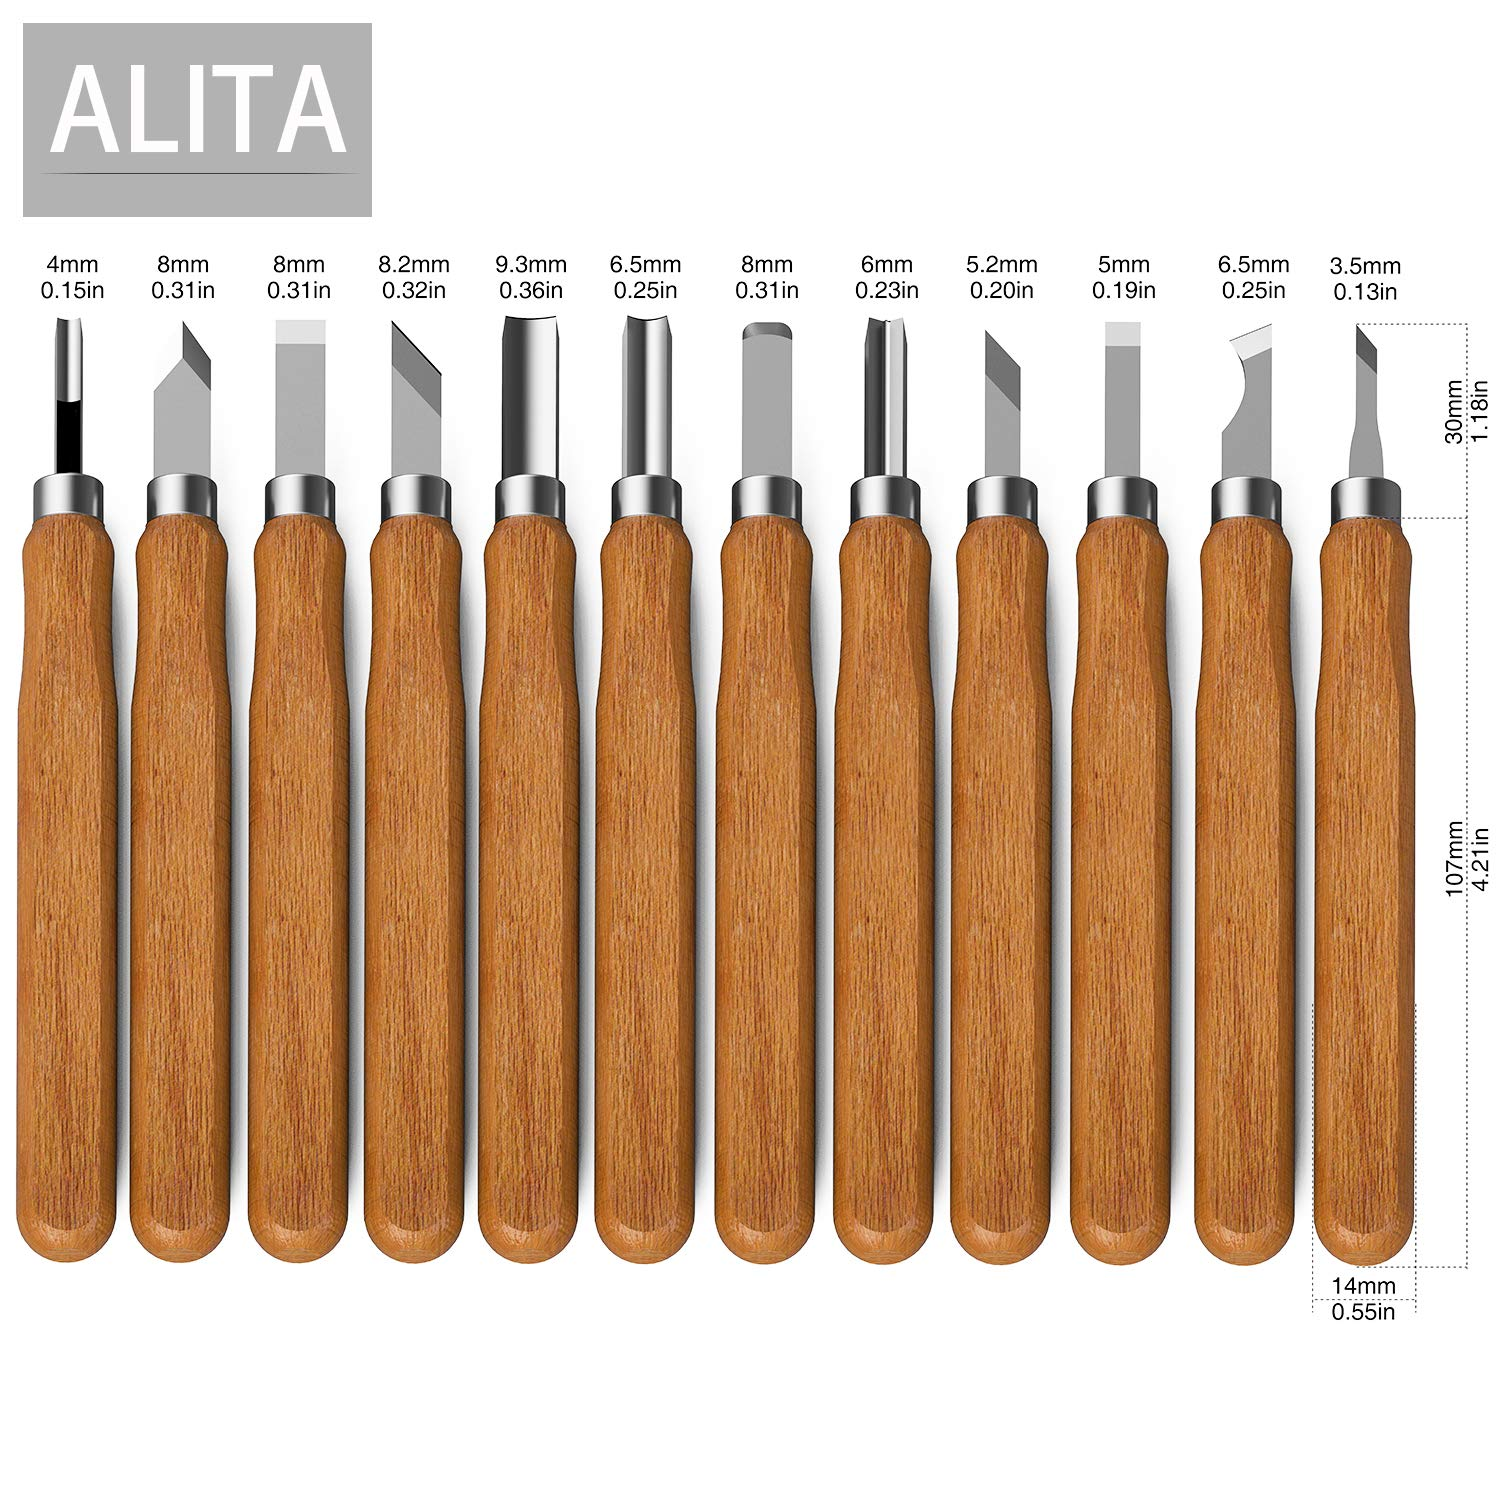 Alita Wood Carving Tools 12 Piece SK10 Carbon Steel Tools and 5 Large Wood Blocks Bundle Preferred Choice for Adults and Kids Great Learning Set for Beginner or Pro